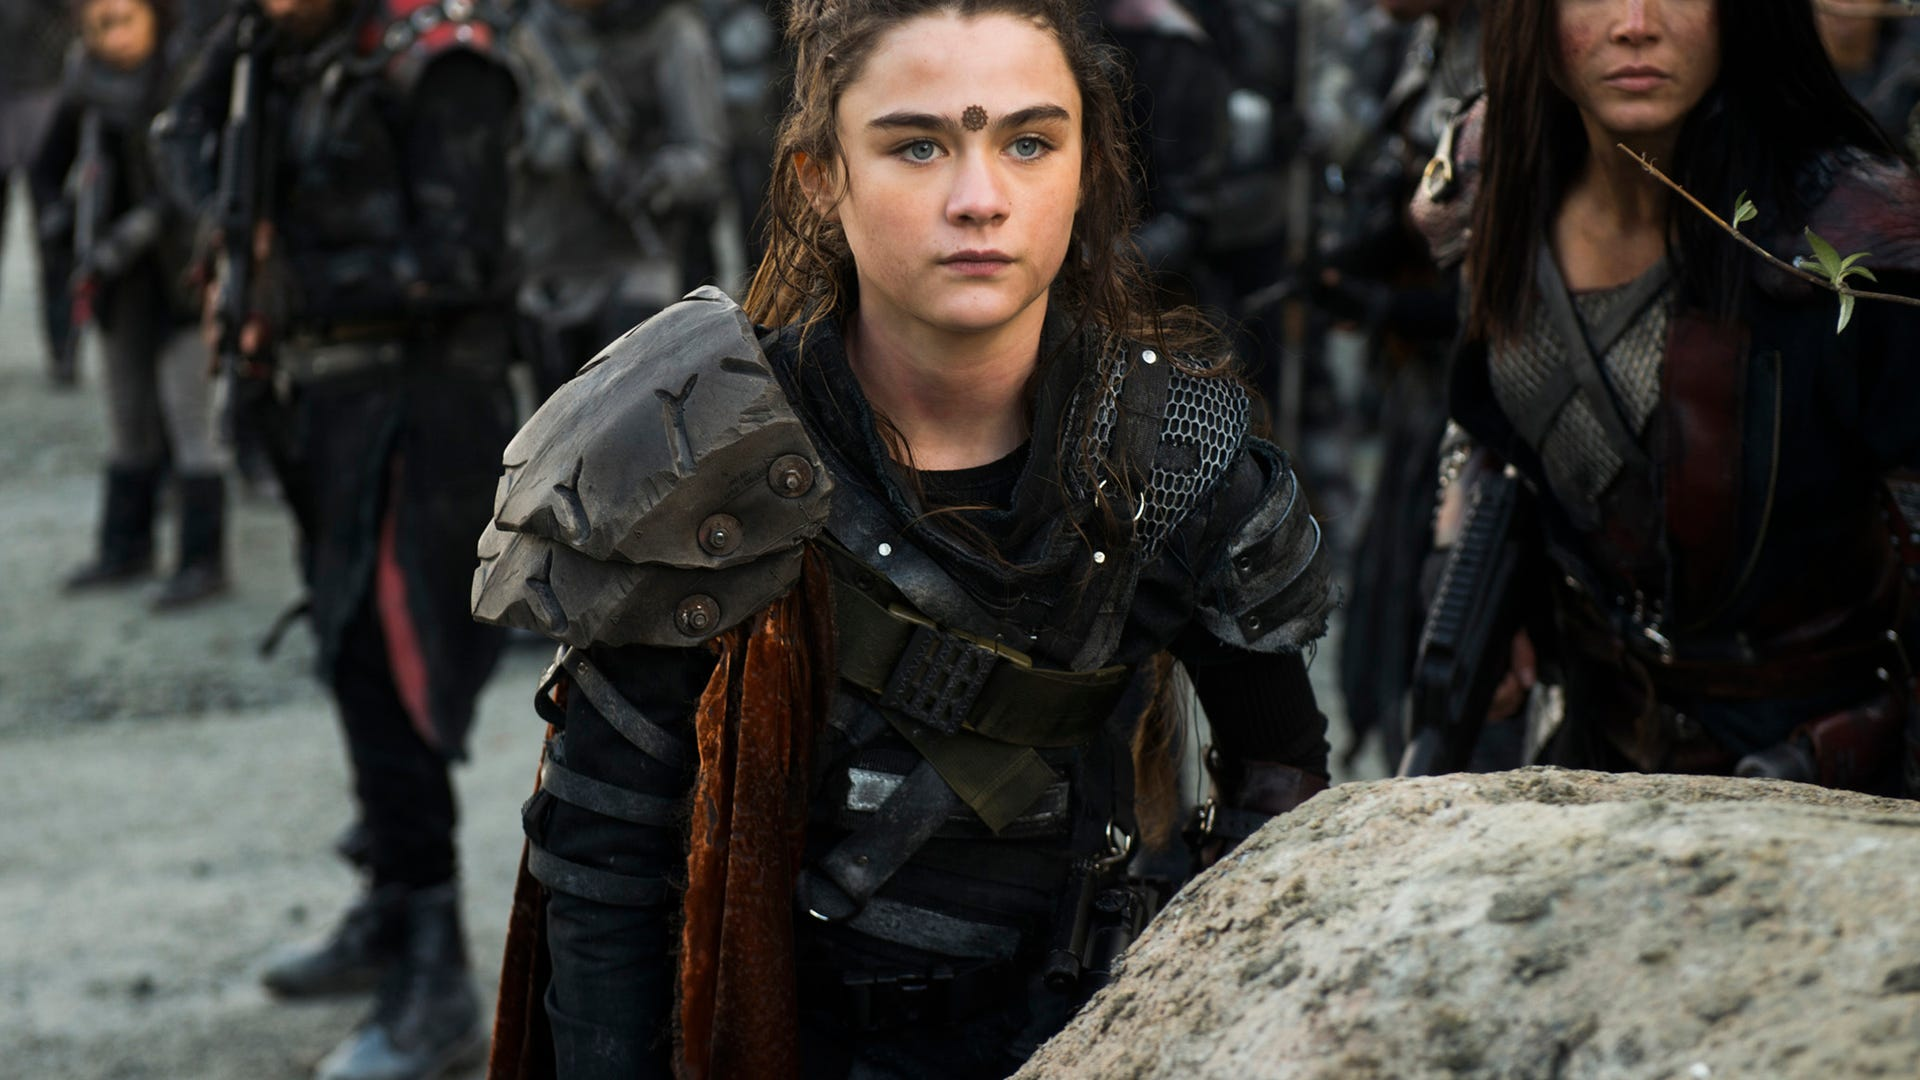 Lola Flannery, The 100